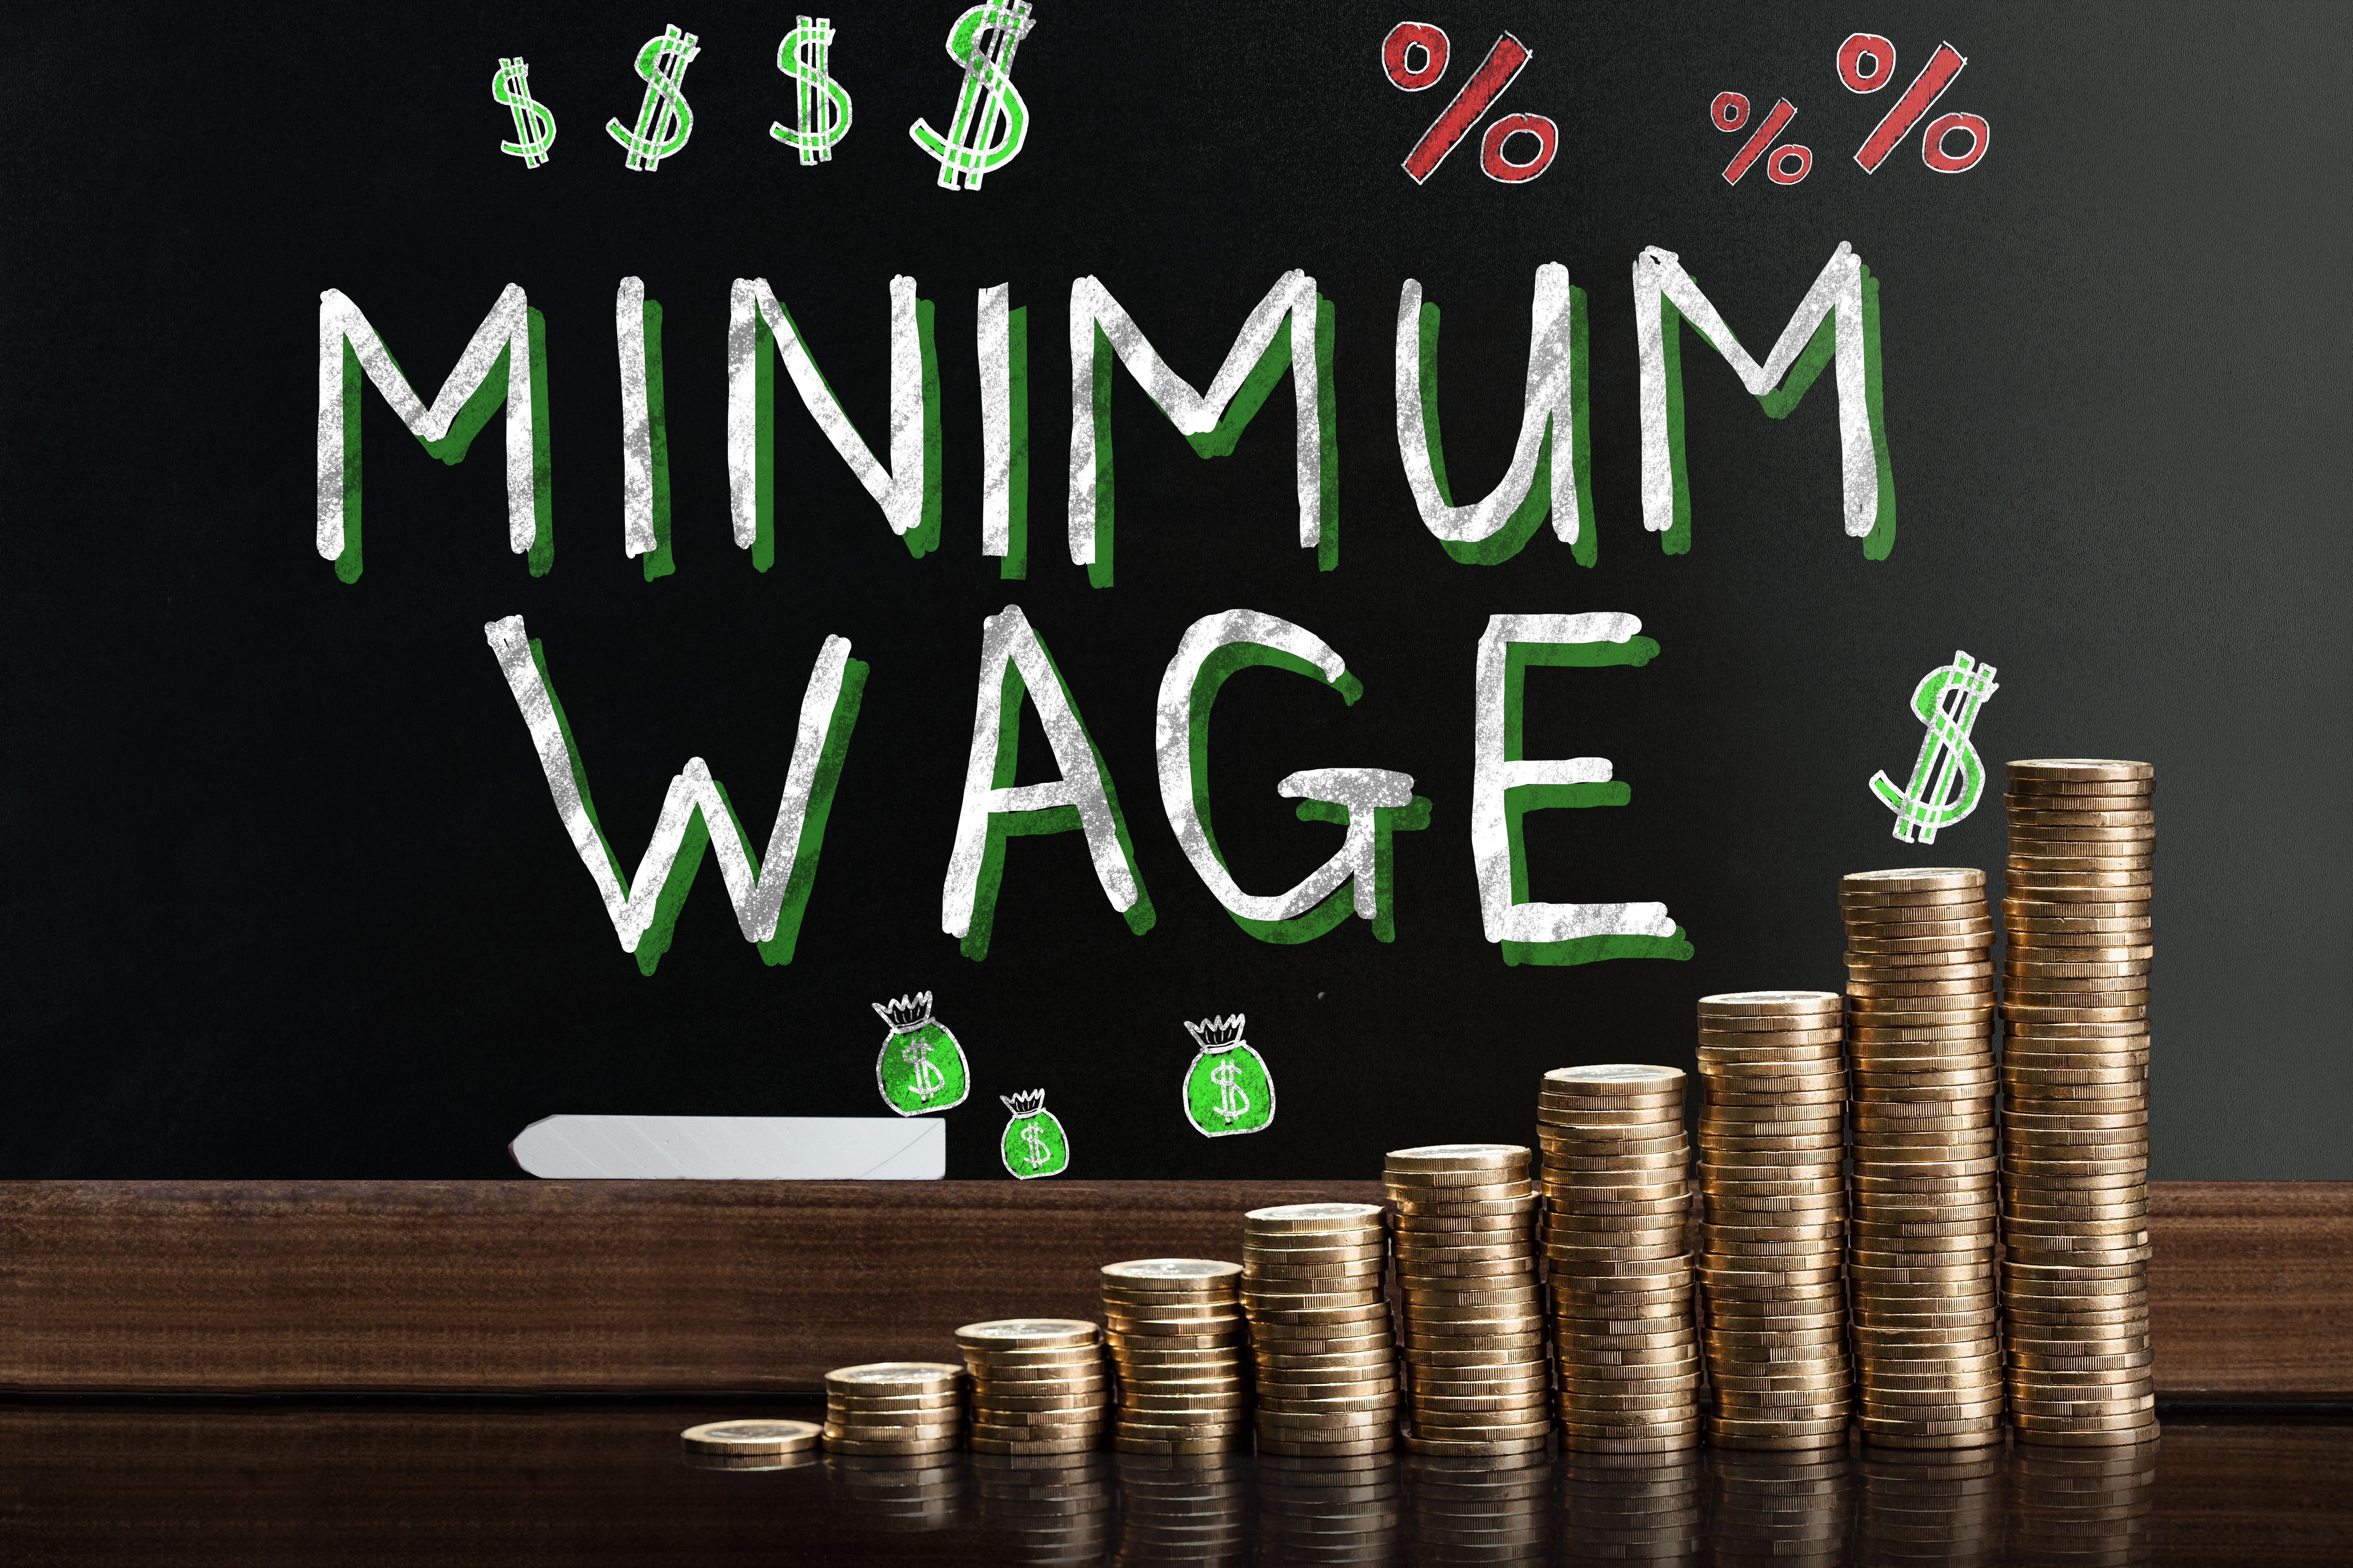 New Jersey Minimum Wage 2020.Minimum Wage Rises To 10 An Hour On Monday But Not For